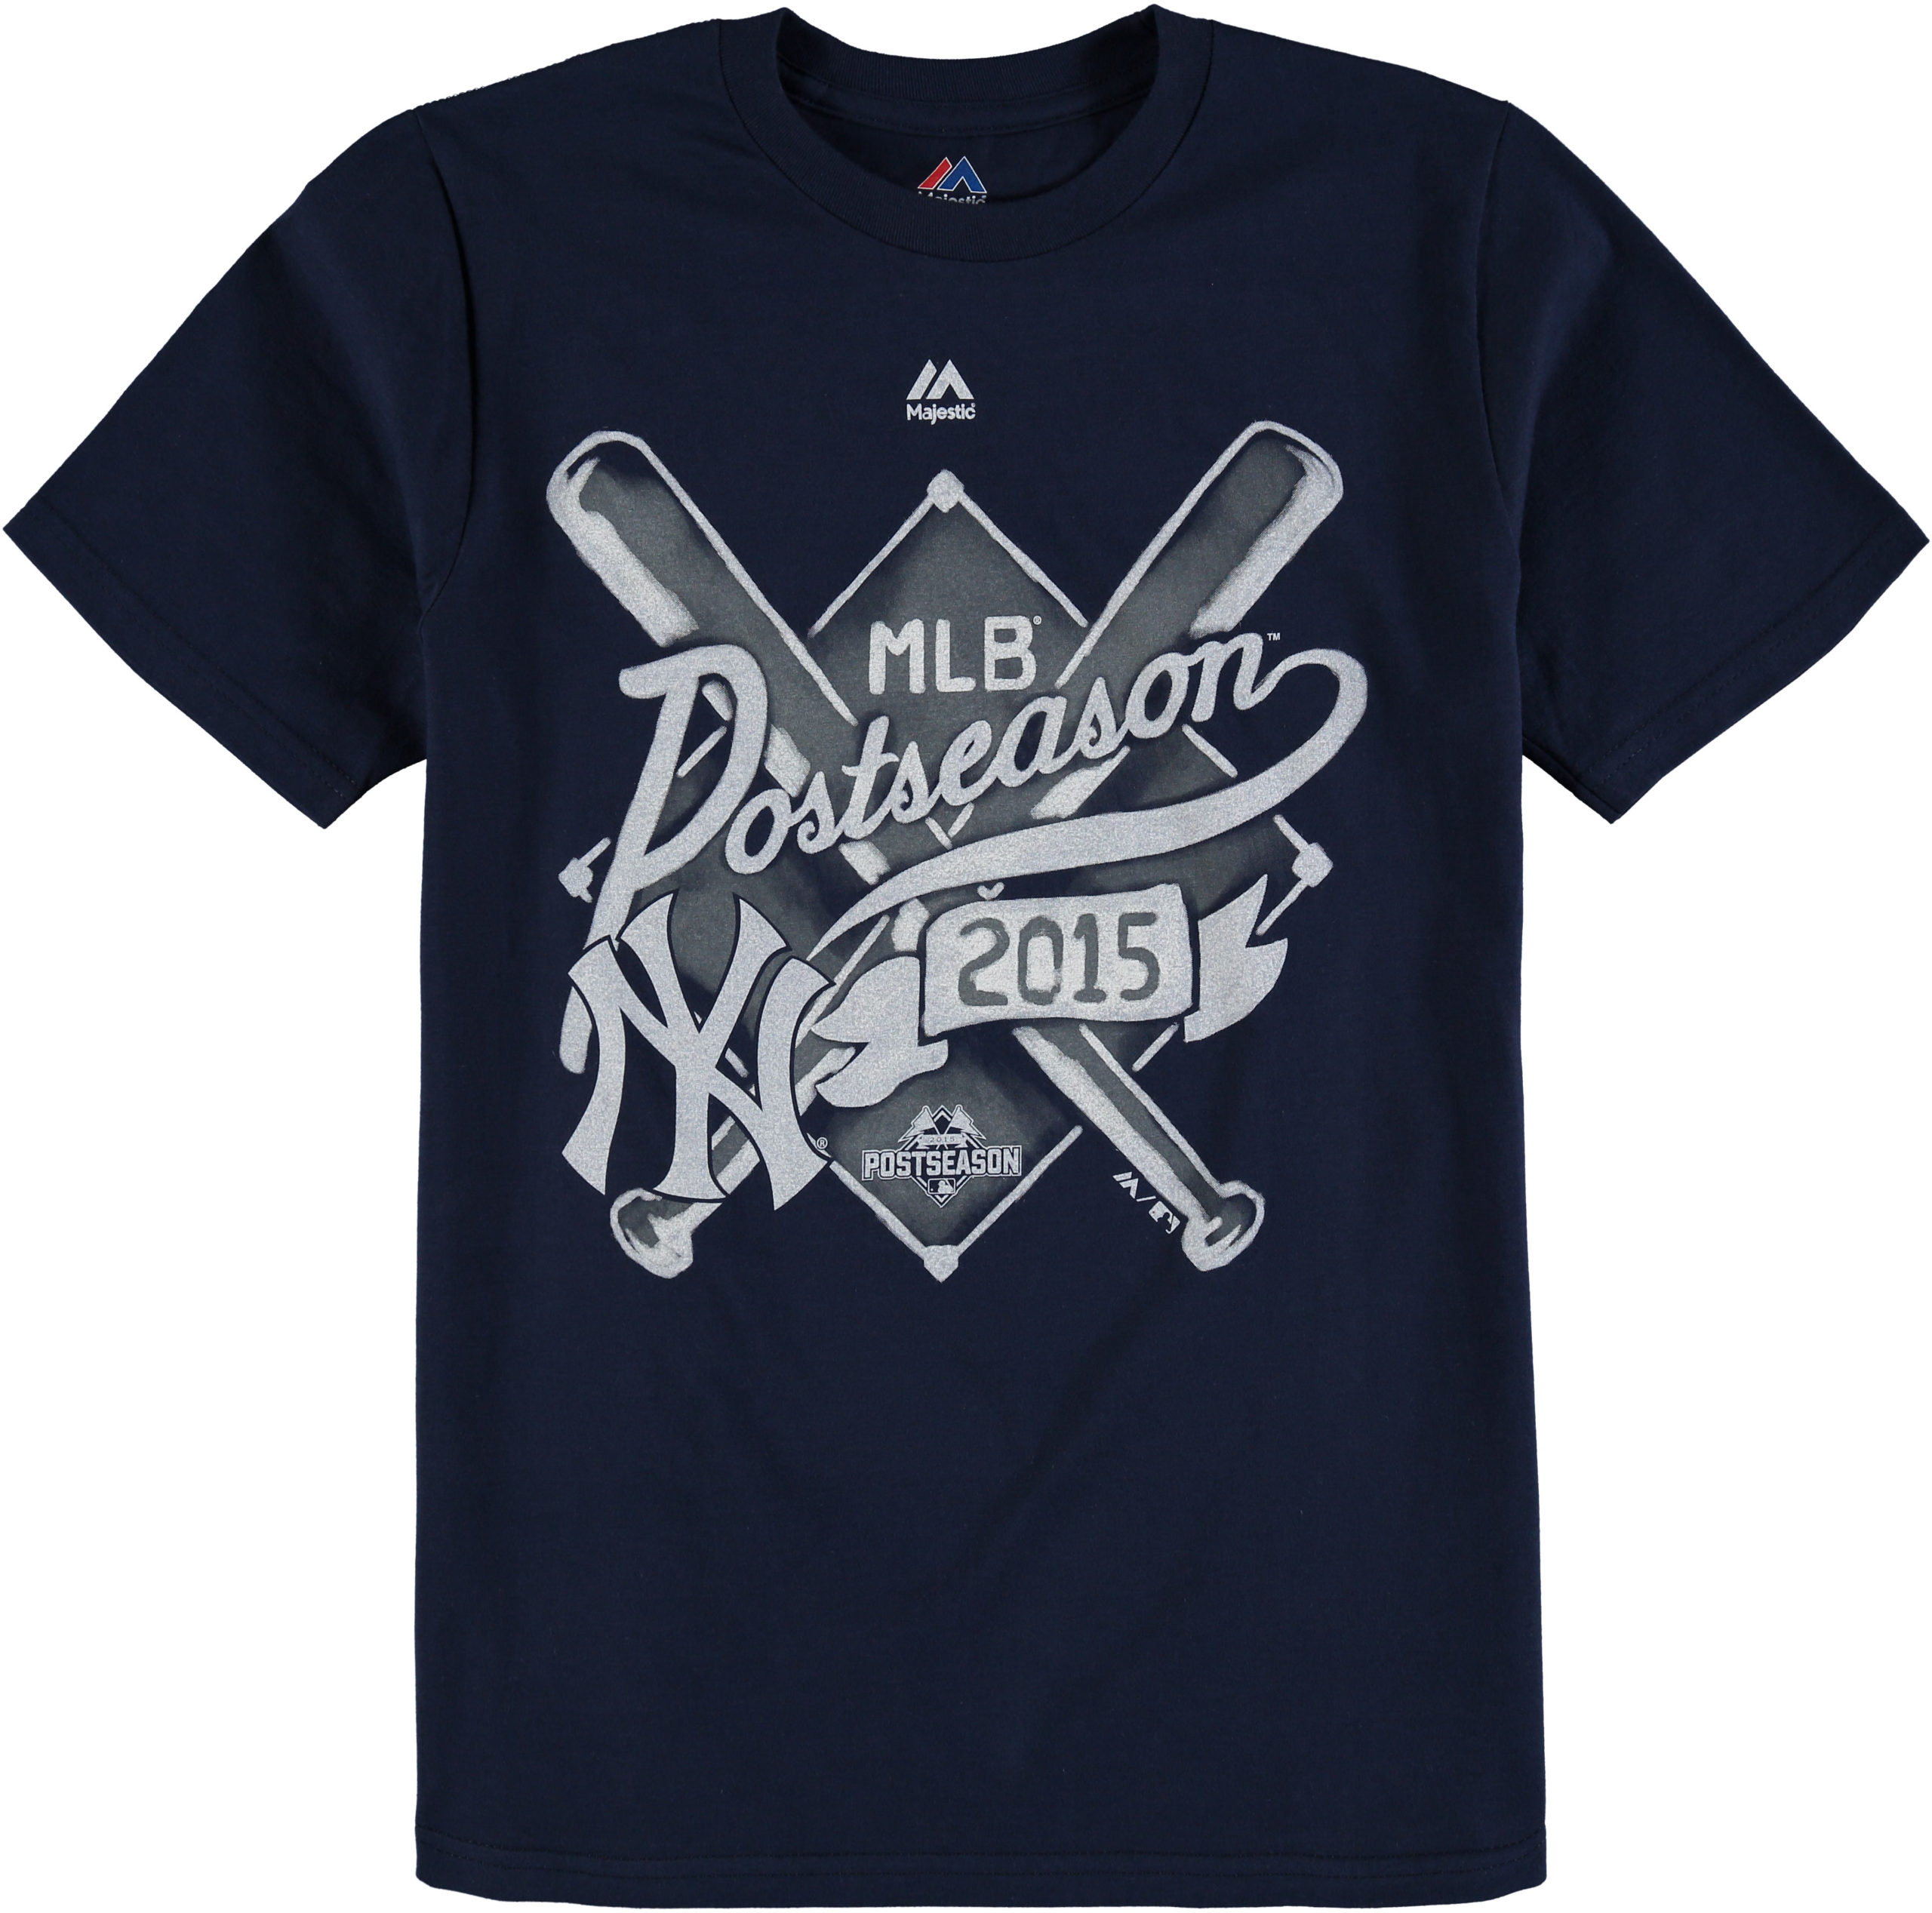 New York Yankees Majestic Youth 2015 Postseason Team Ambition T-Shirt - Navy